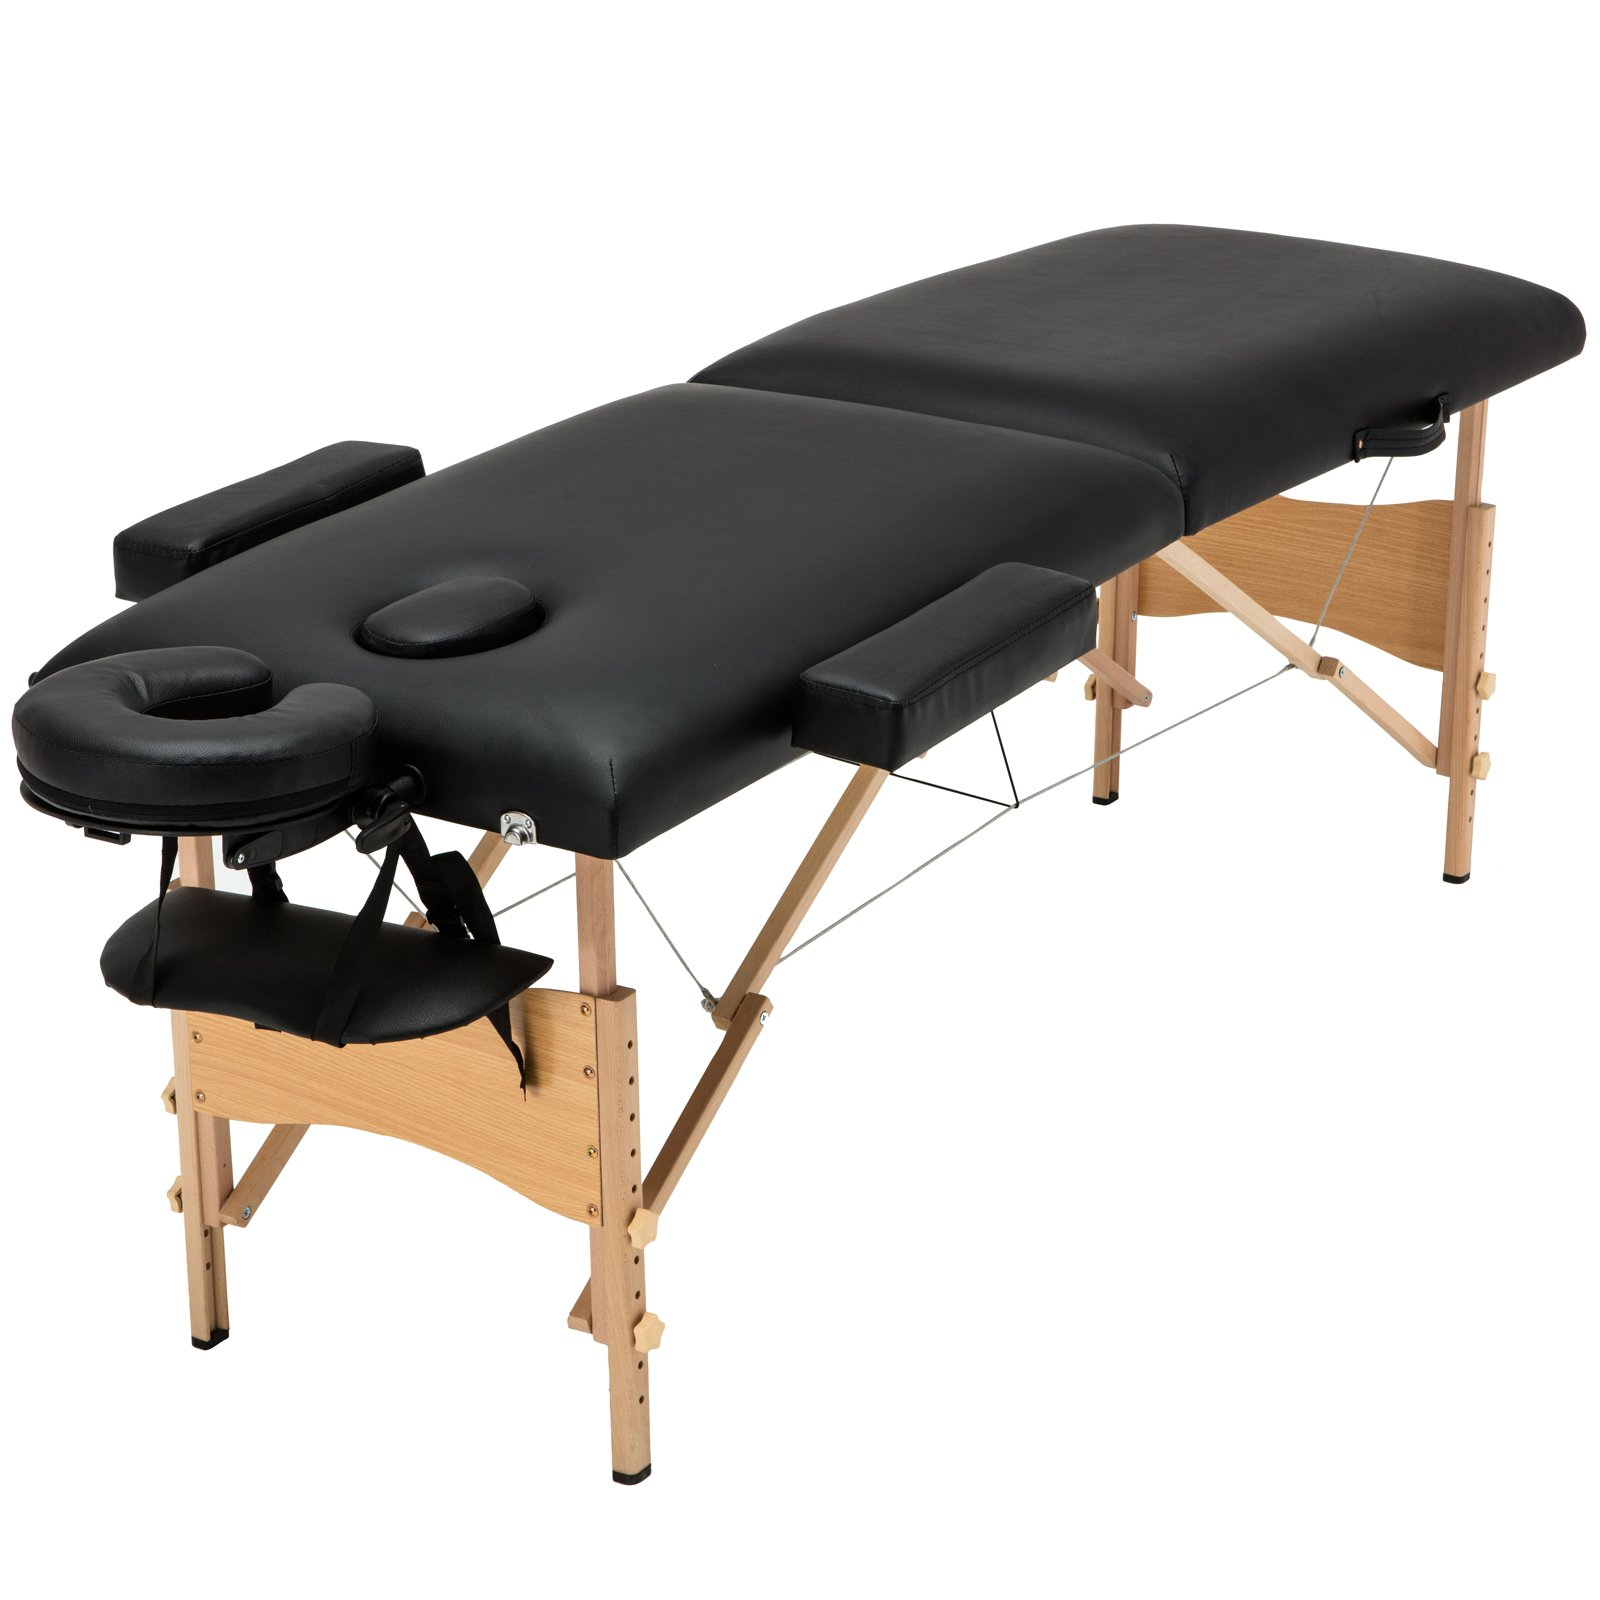 Uenjoy Folding Massage Table 84'' Professional Massage Bed With Free Carrying Bag 2 Fold,Black